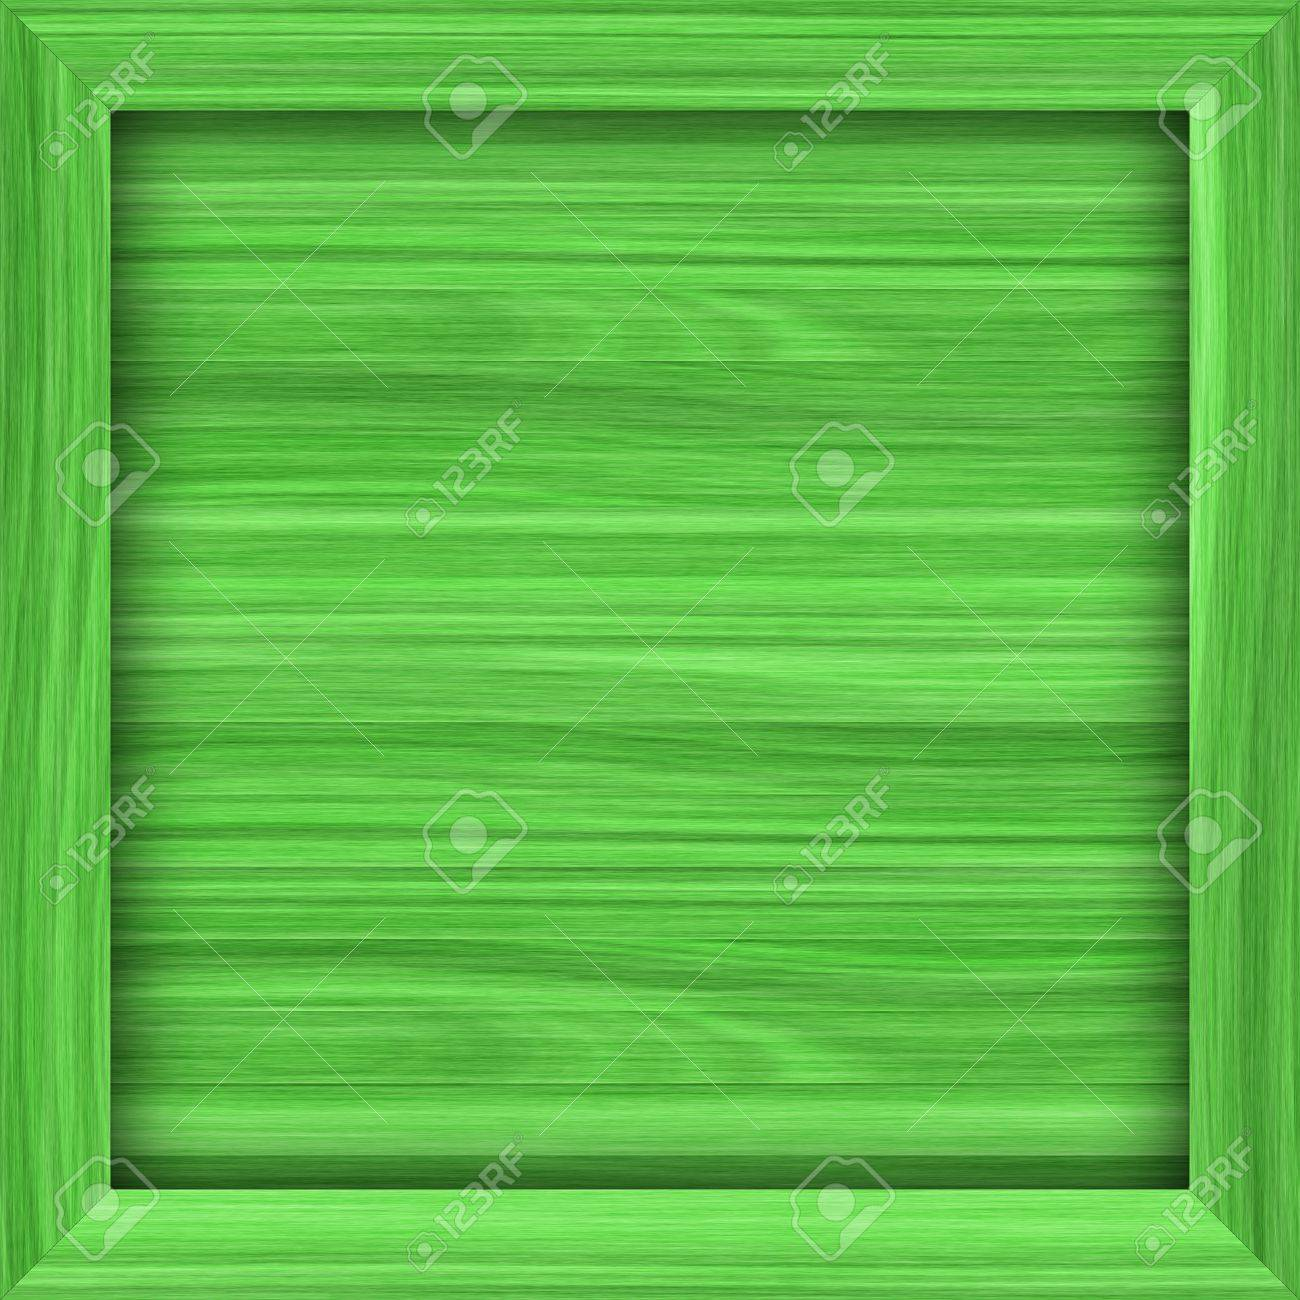 Simple Green Wooden Crate Or Frame With Copy Space Would Make A Great Background For